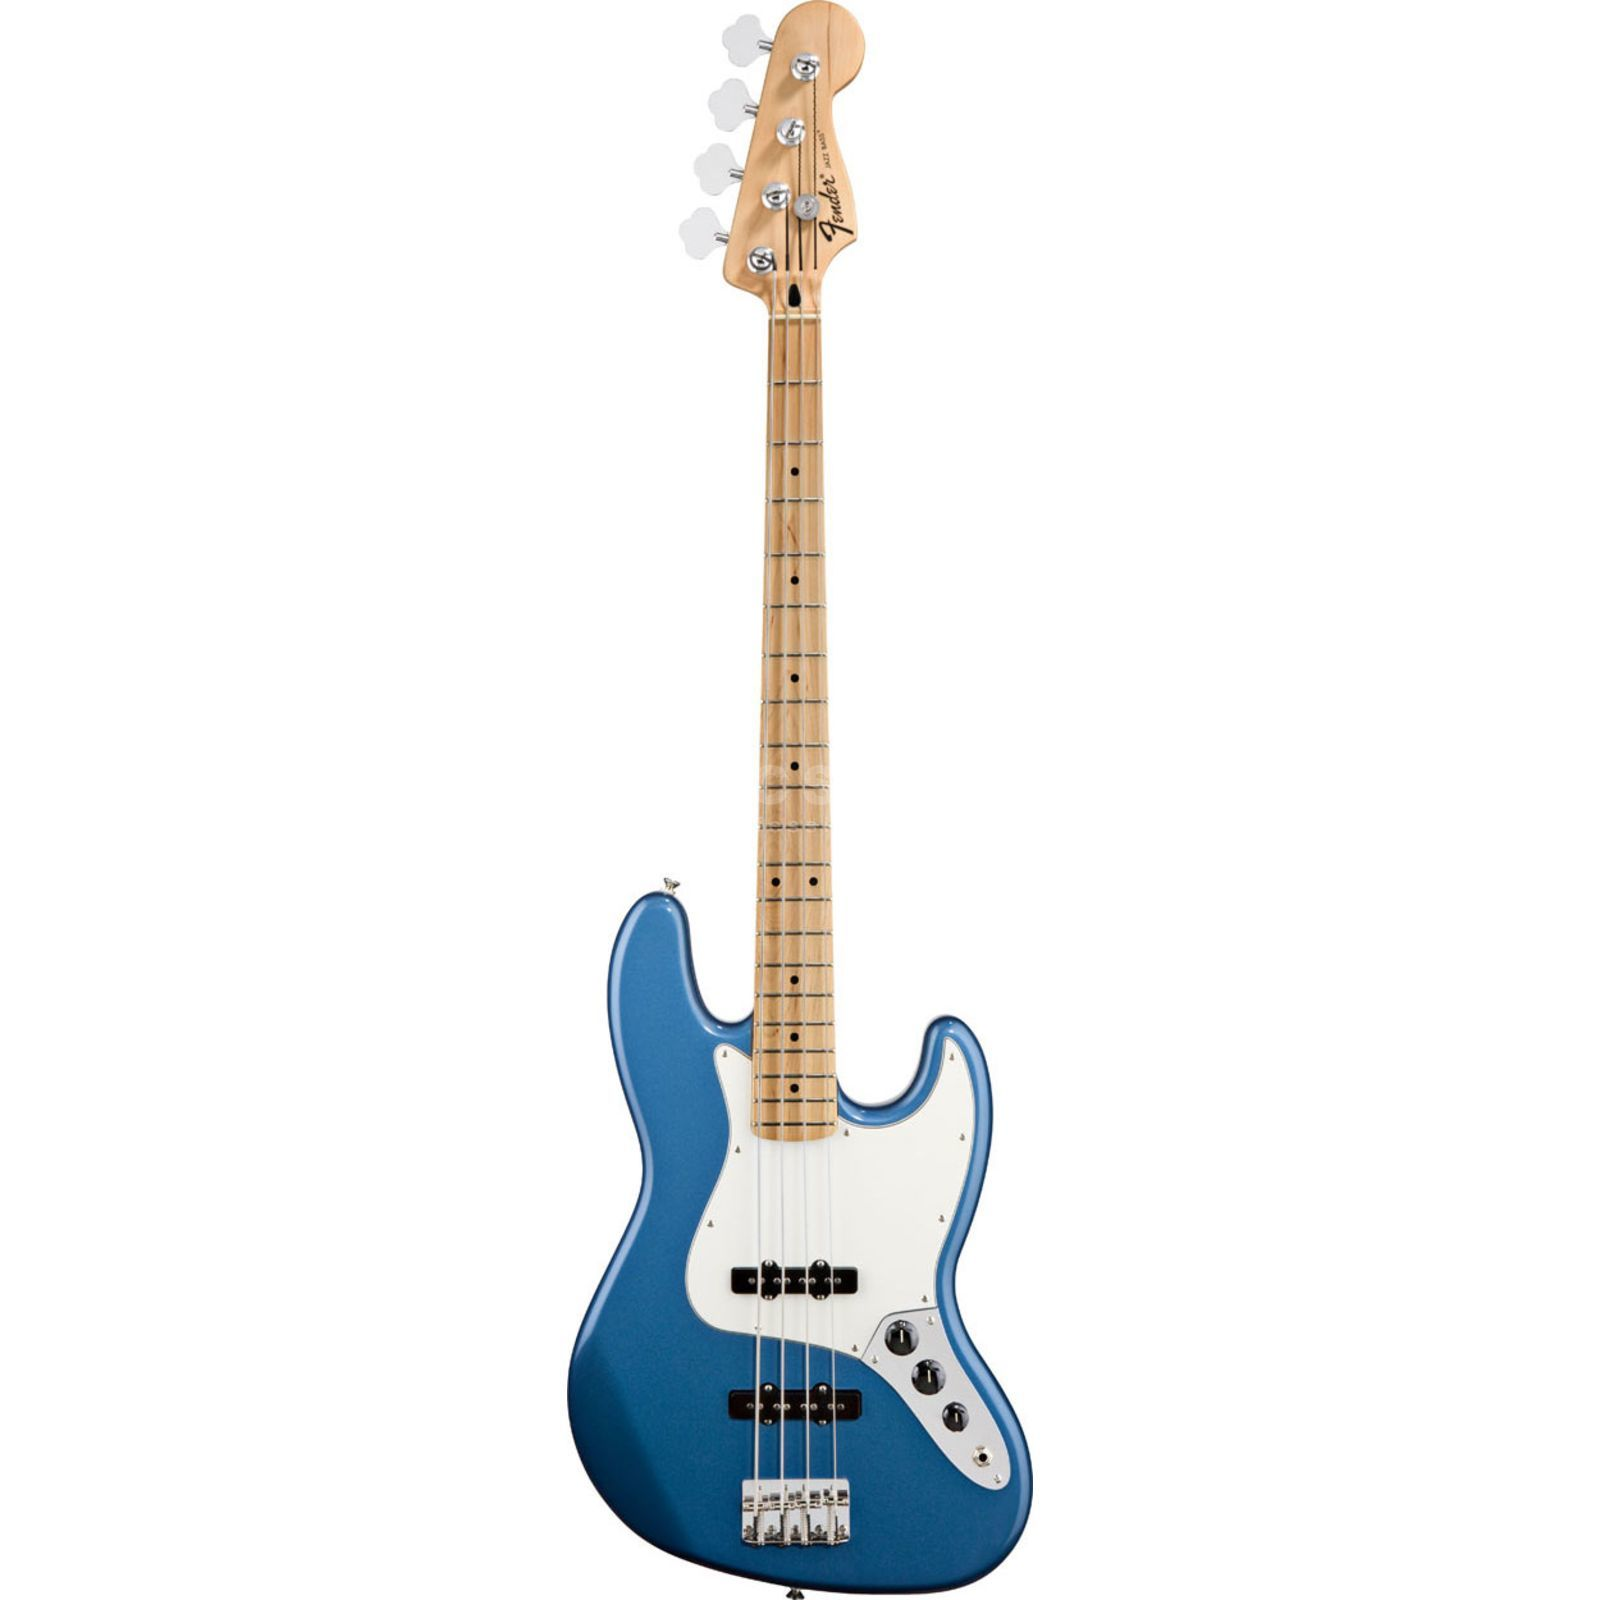 Fender Standard Jazz Bass MN Lake Placid Blue Image du produit